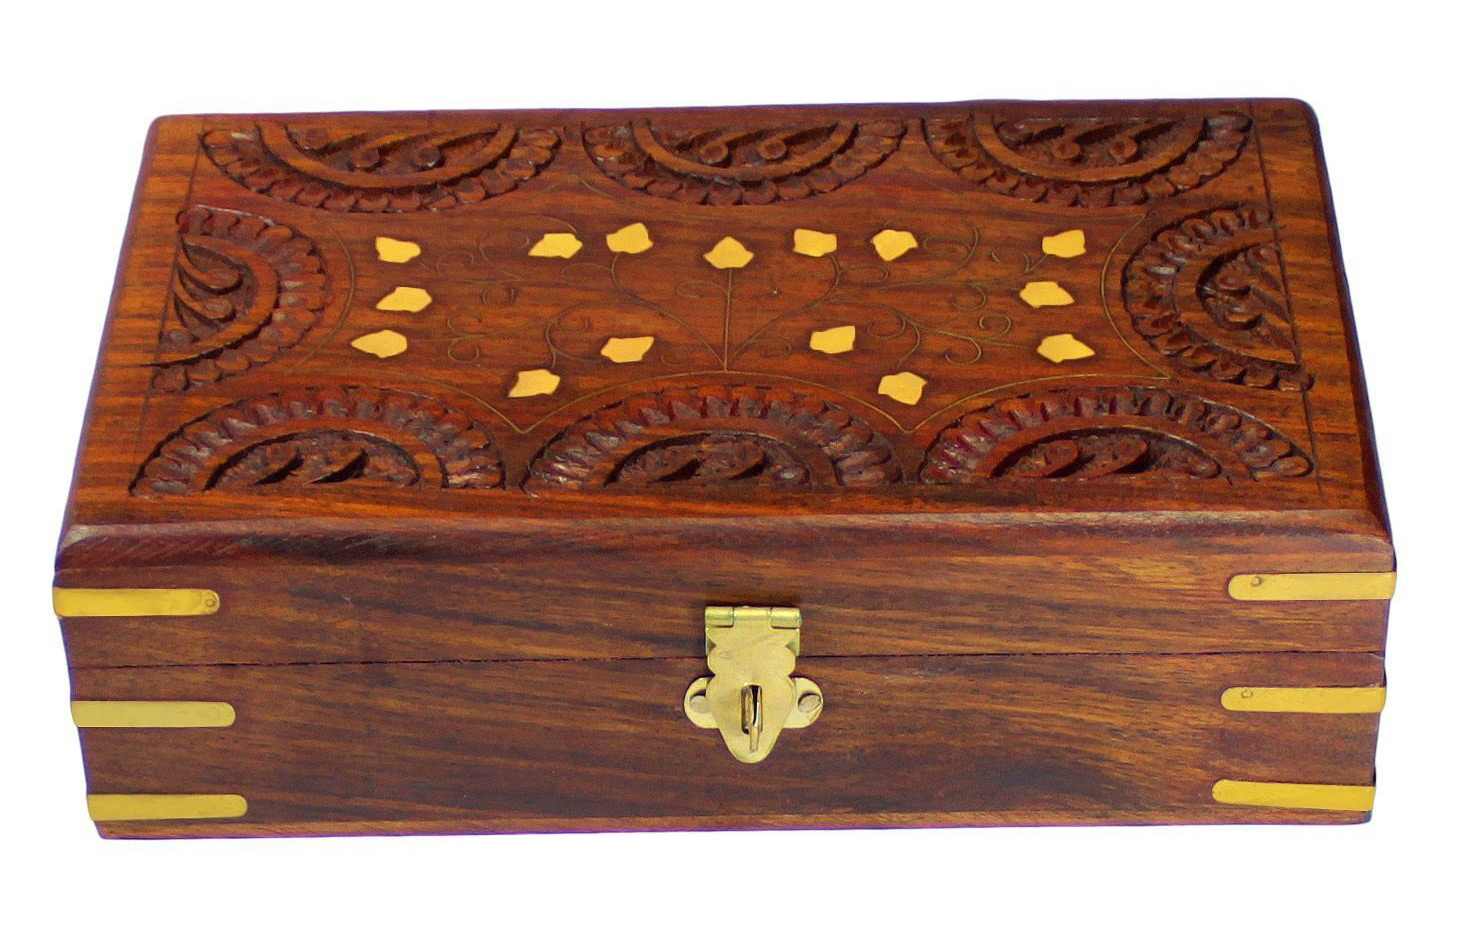 Cute Gold Hinge Decorative Wooden Carved Trinket Box